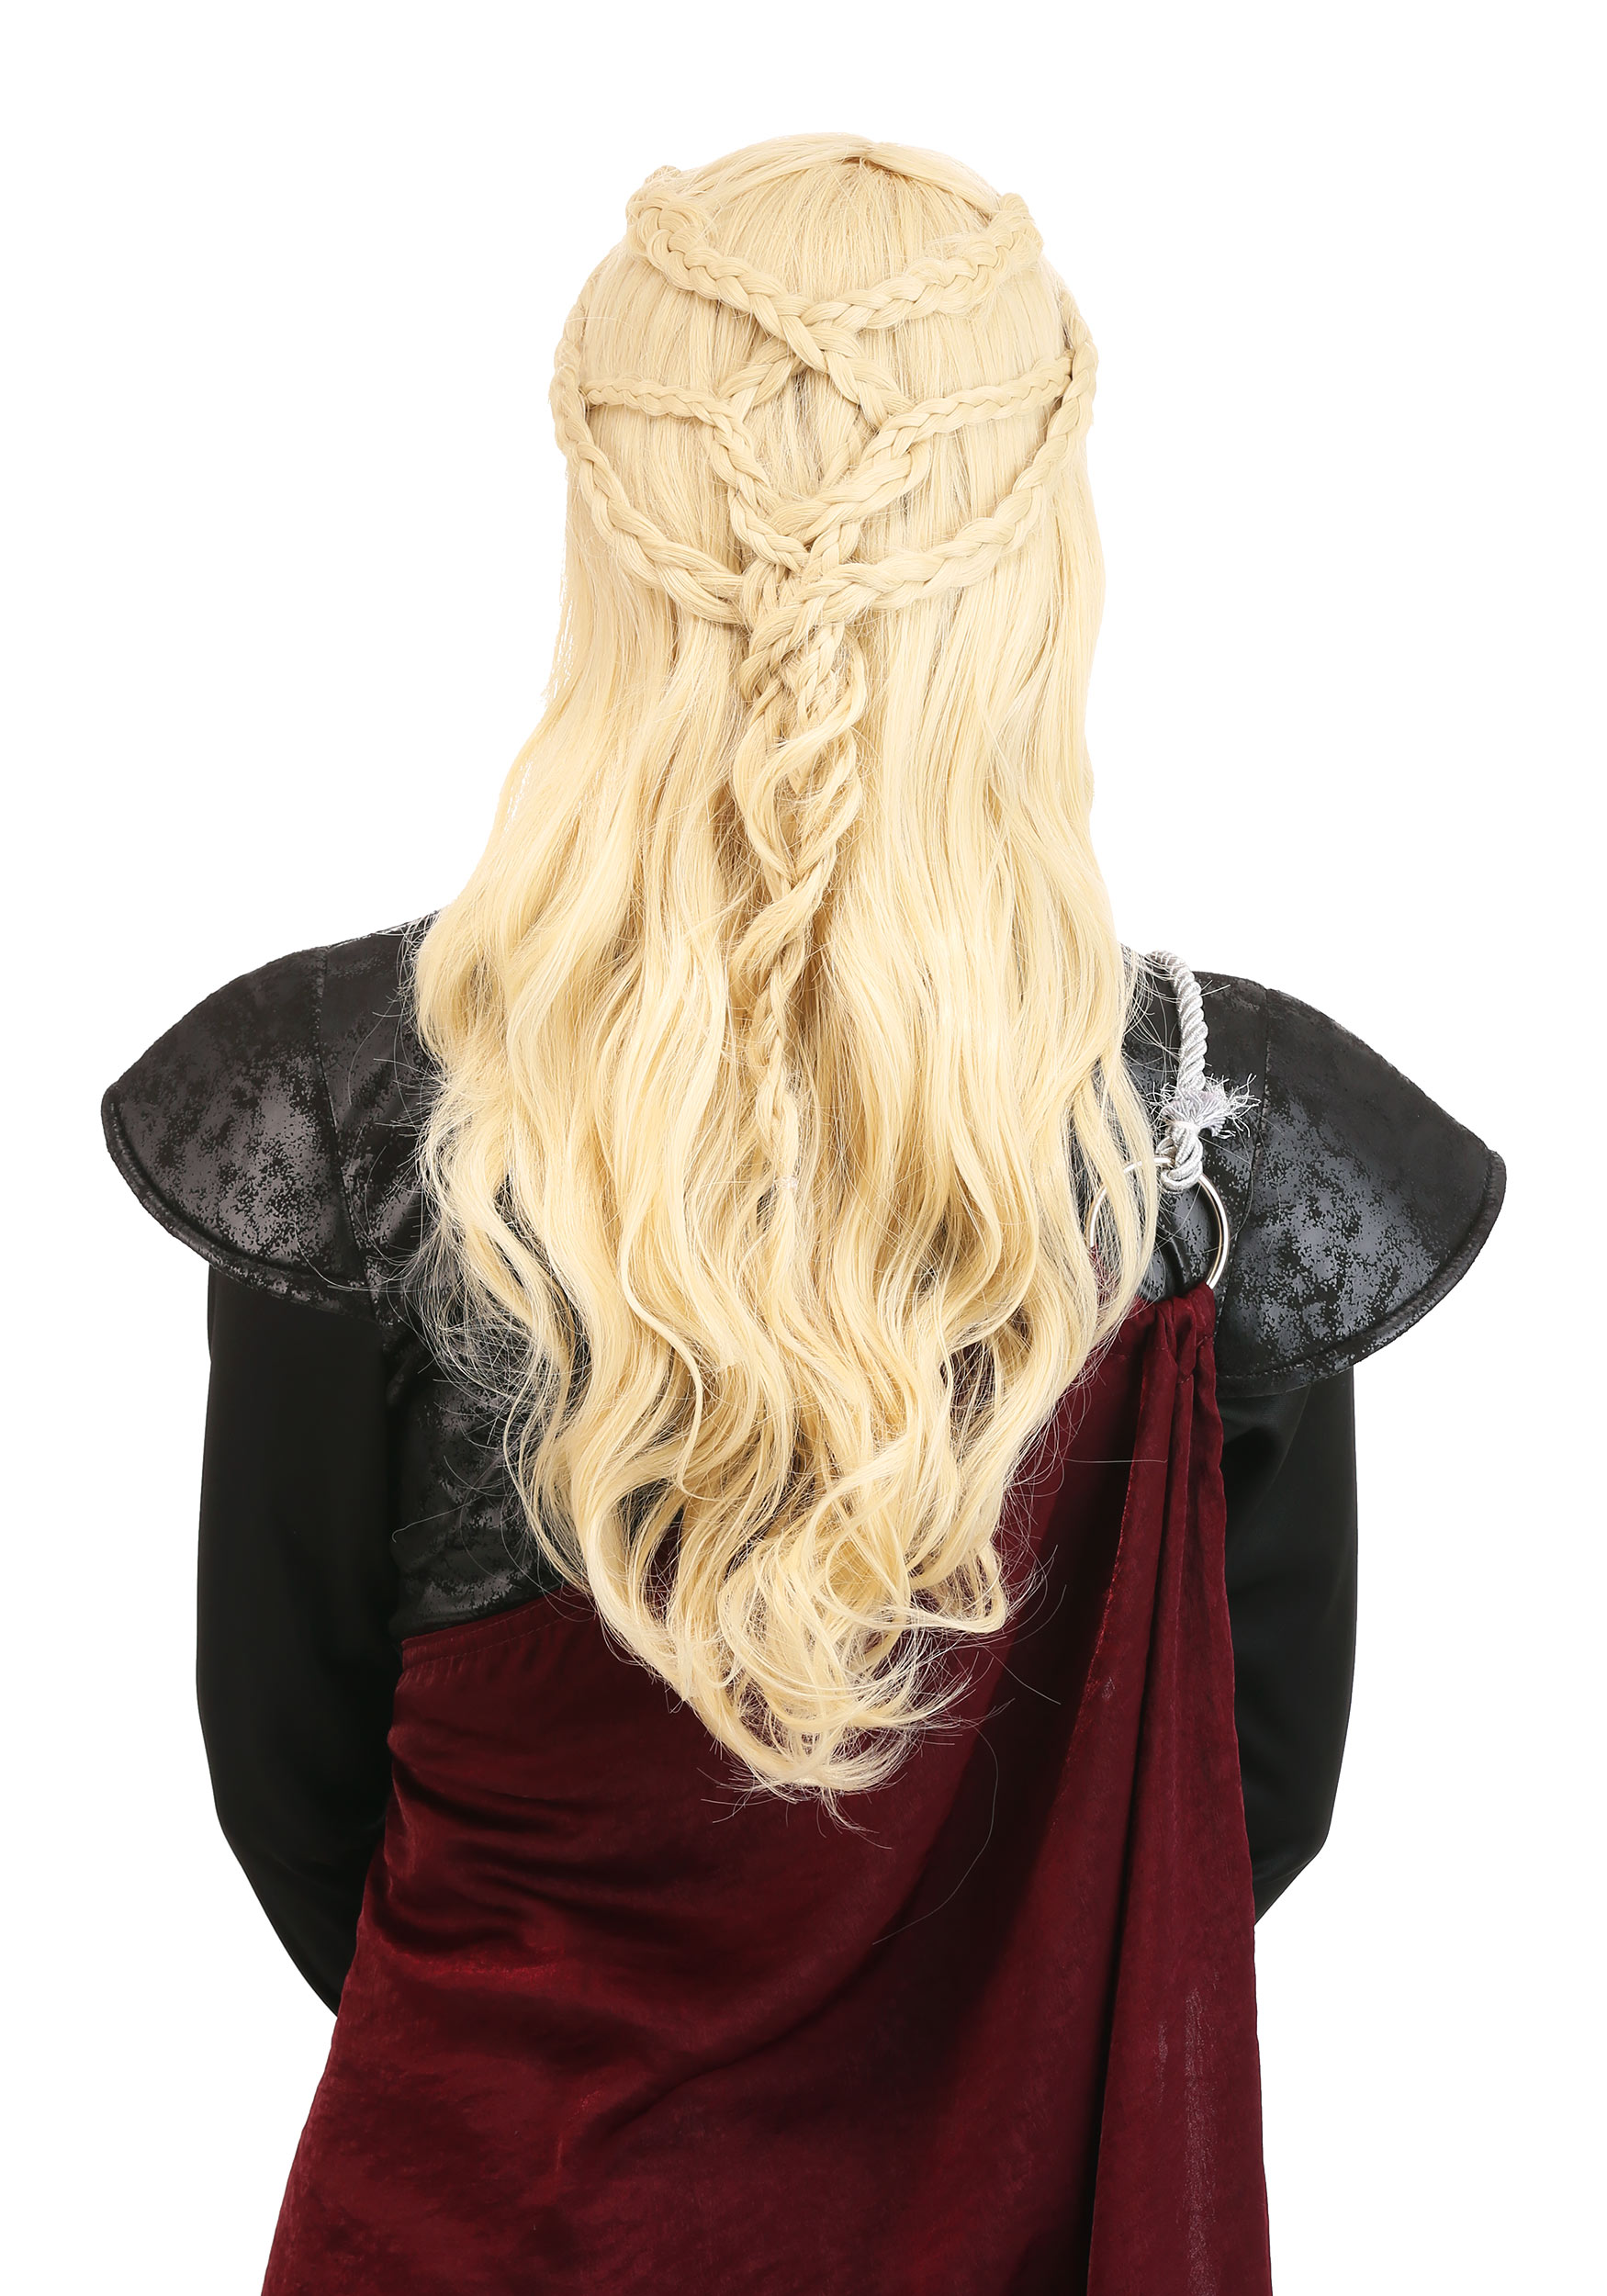 Daenerys Makeup and Hair Back View